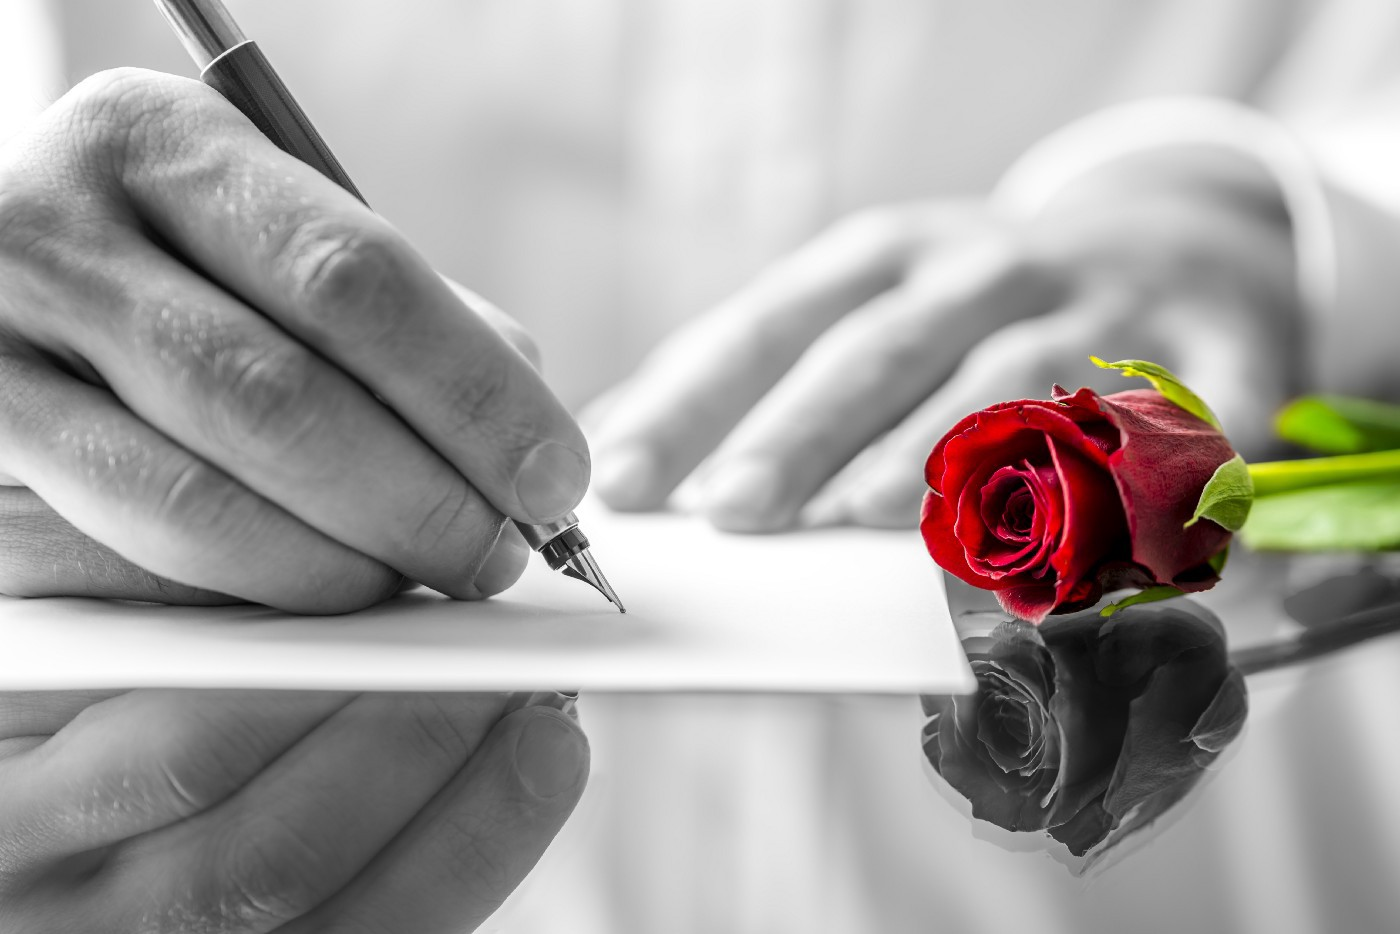 An image of a hand writing a letter